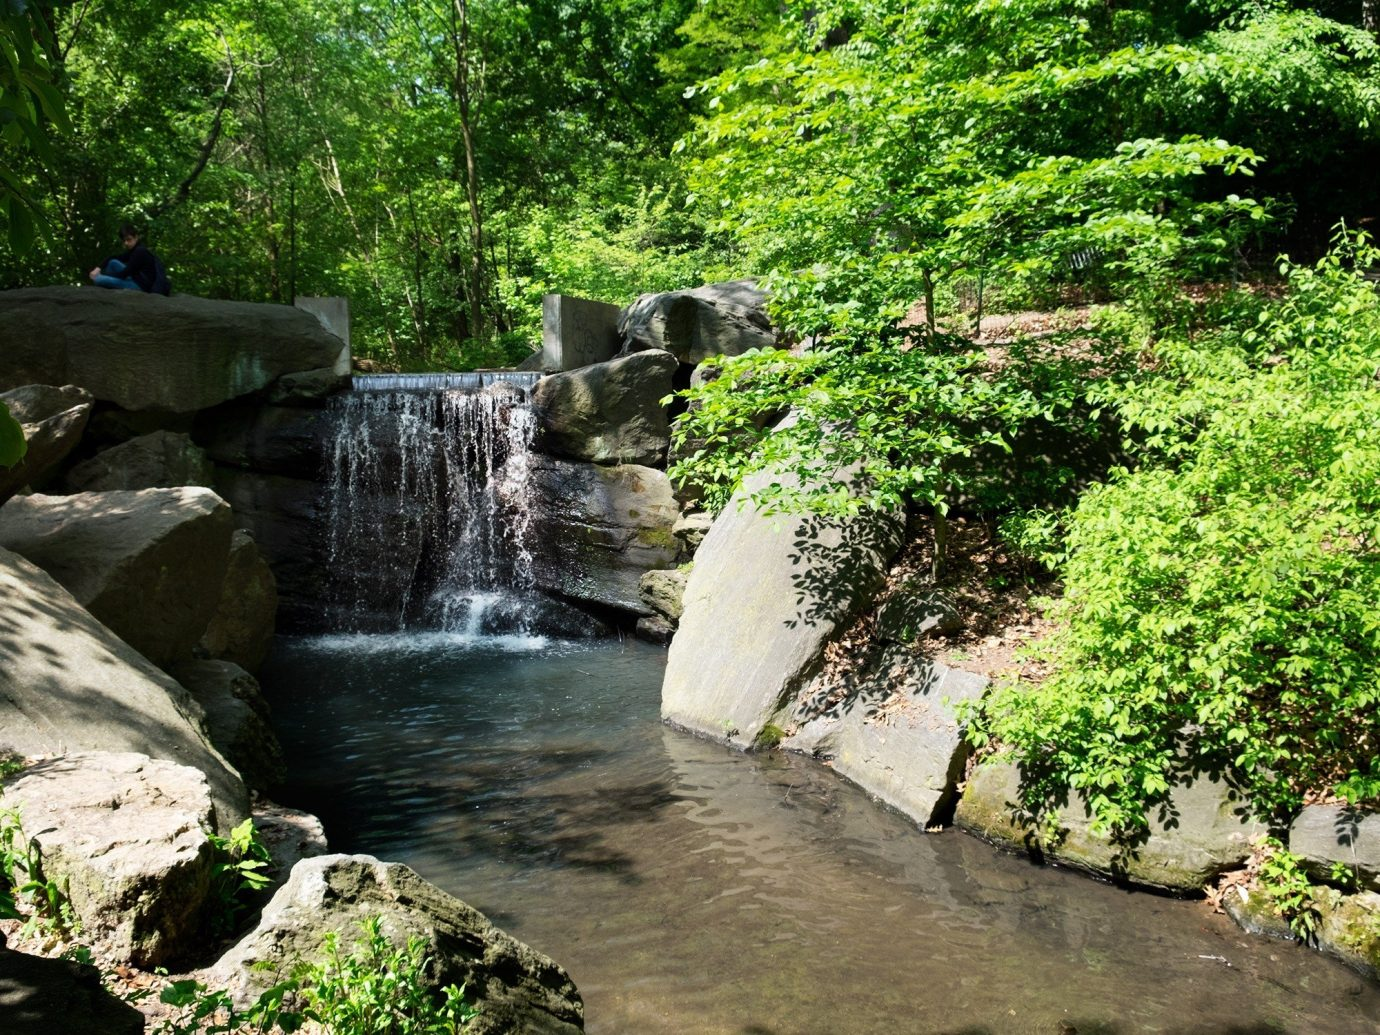 Travel Tips tree outdoor rock Nature Waterfall watercourse body of water water River green stream botany water feature Garden Forest woodland flower Jungle rainforest waterway valley pond stone surrounded